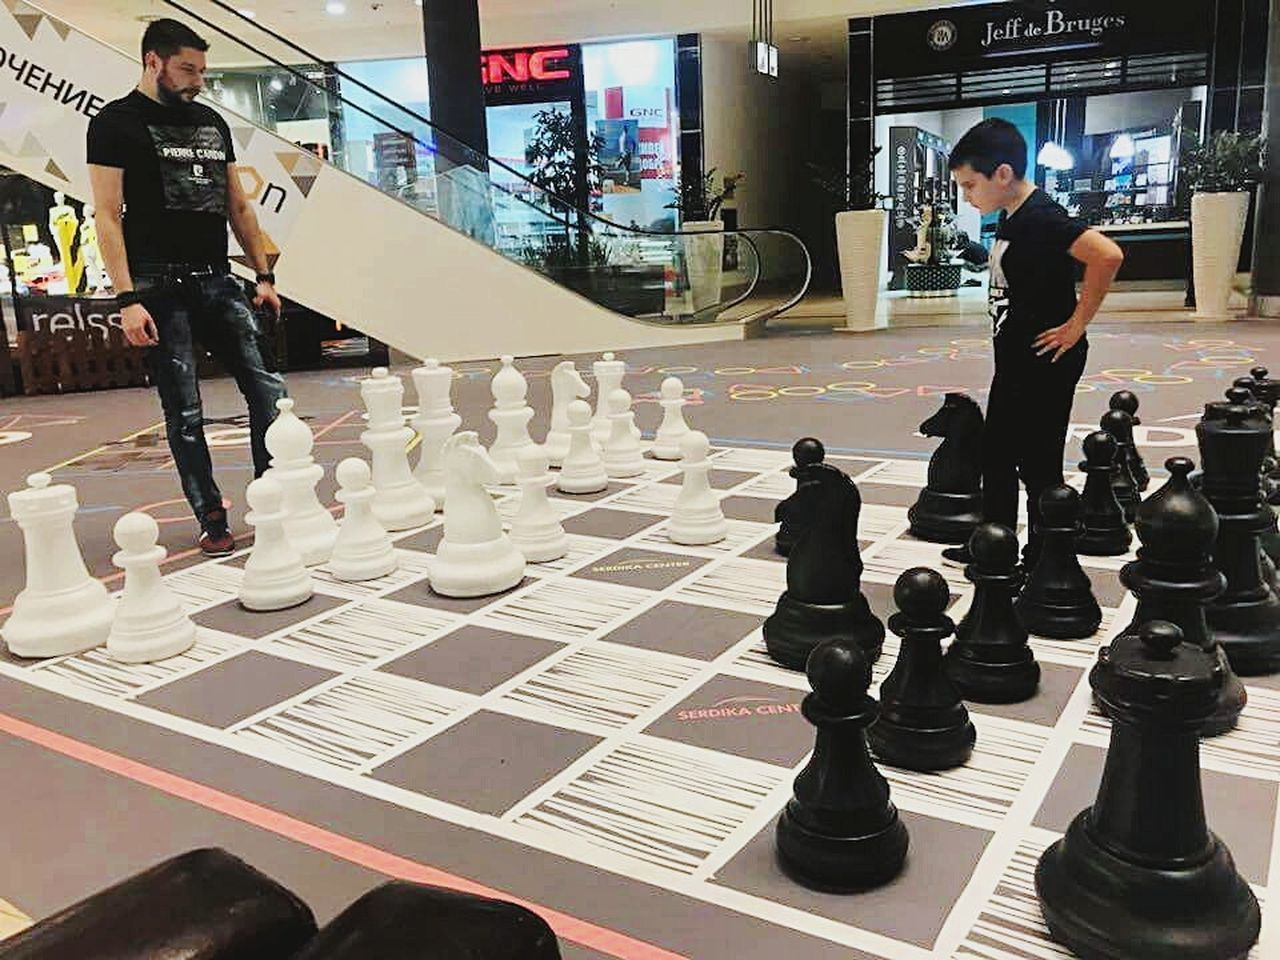 leisure games, game, chess, board game, leisure activity, chess piece, strategy, relaxation, chess board, men, real people, arts culture and entertainment, people, full length, playing, incidental people, sport, competition, standing, lifestyles, pawn - chess piece